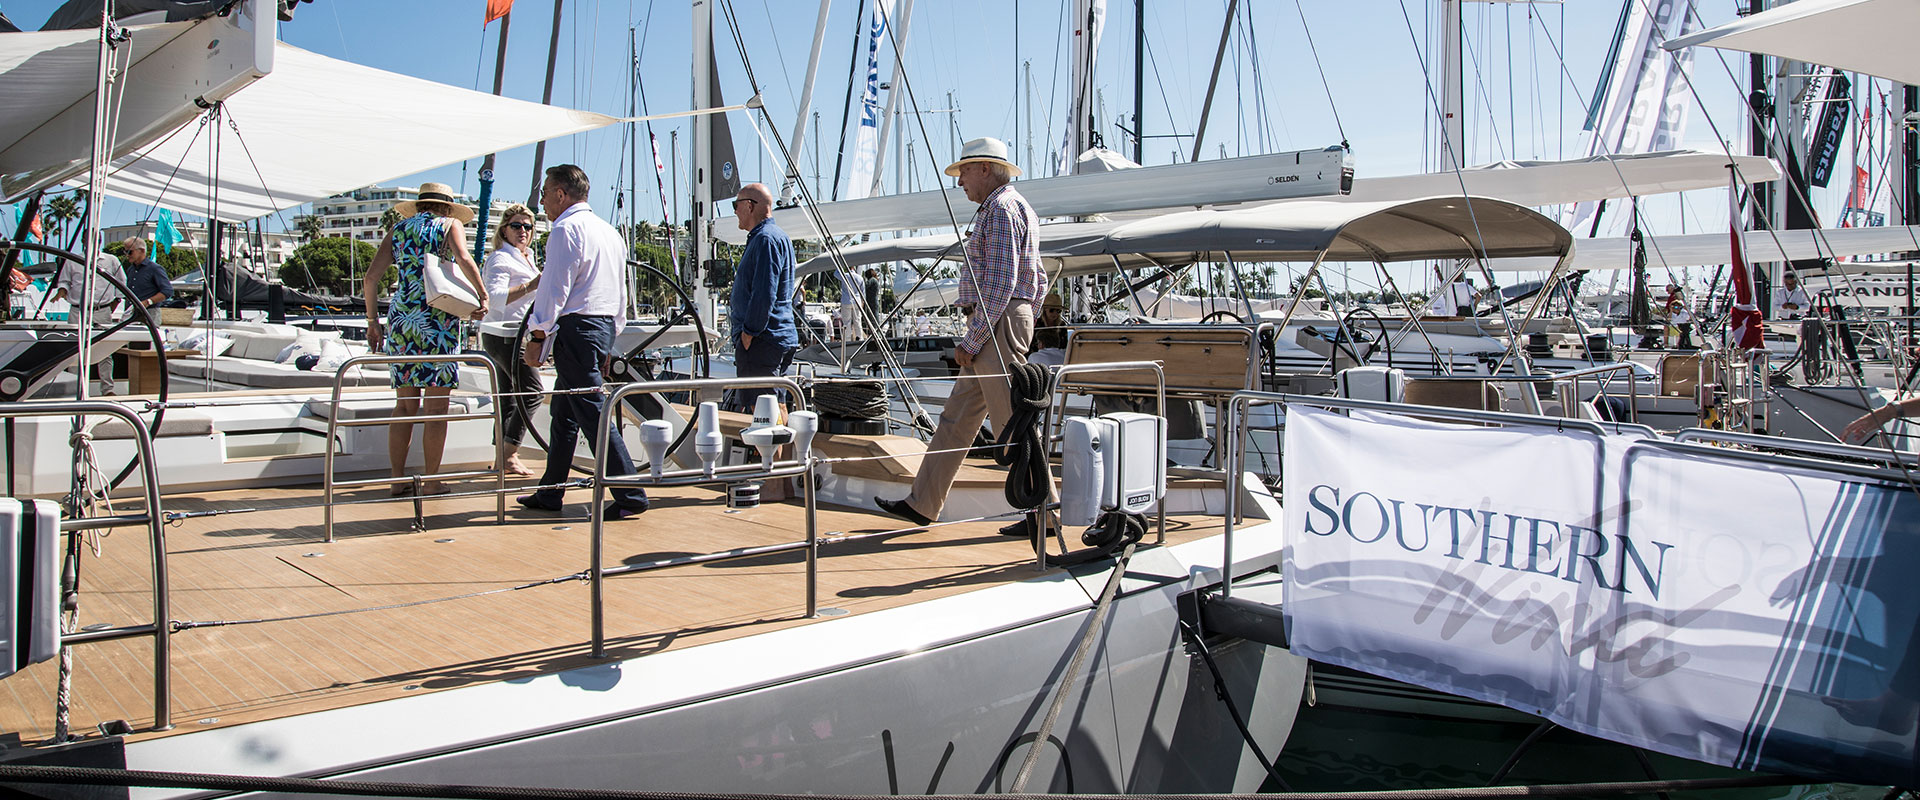 Boat Show_Cannes Yachting Festival